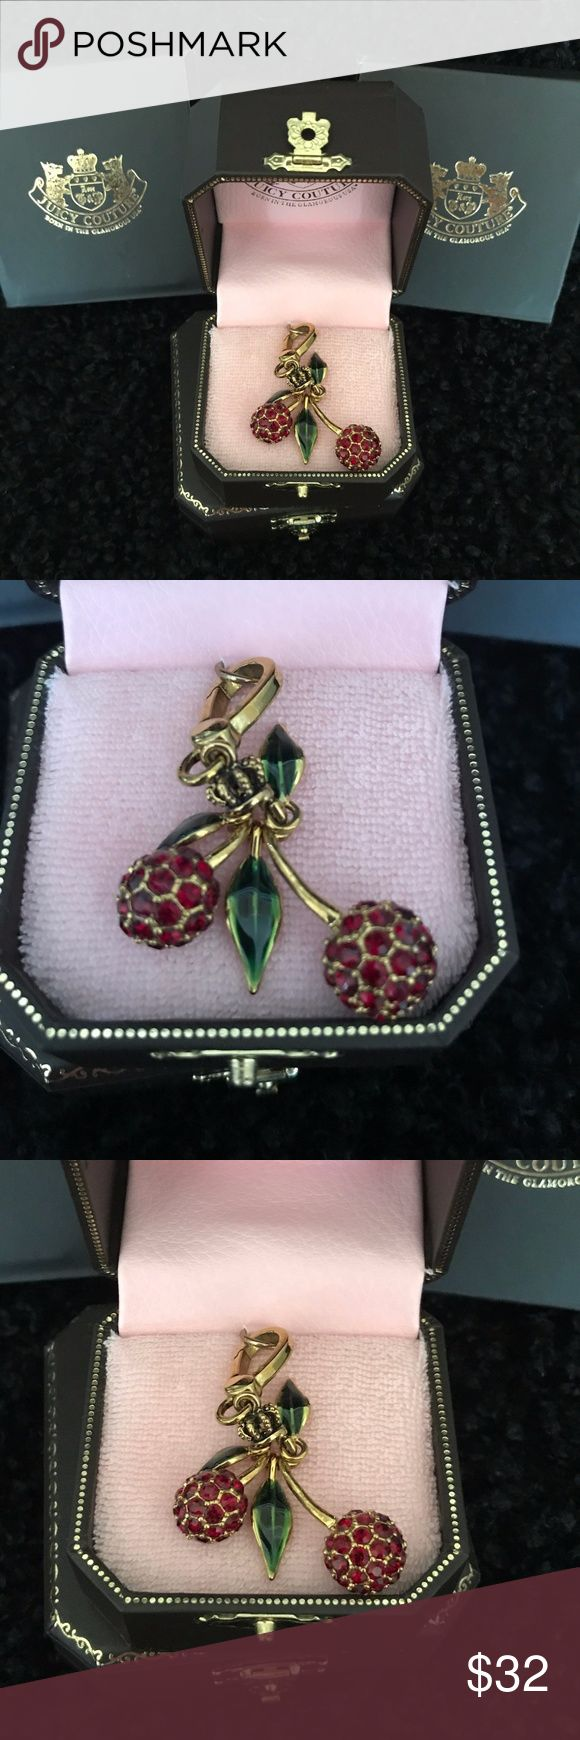 JUICY COUTURE Red Rhinestone Cherries Charm JUICY COUTURE Rhinestone and Enamel Cherries Charm.  ...Retired piece by Juicy ...Done in brilliant Red  Rhinestones ...Green enameled leaves ...Gold tone metal ...completely jointed Juicy Couture Jewelry Bracelets